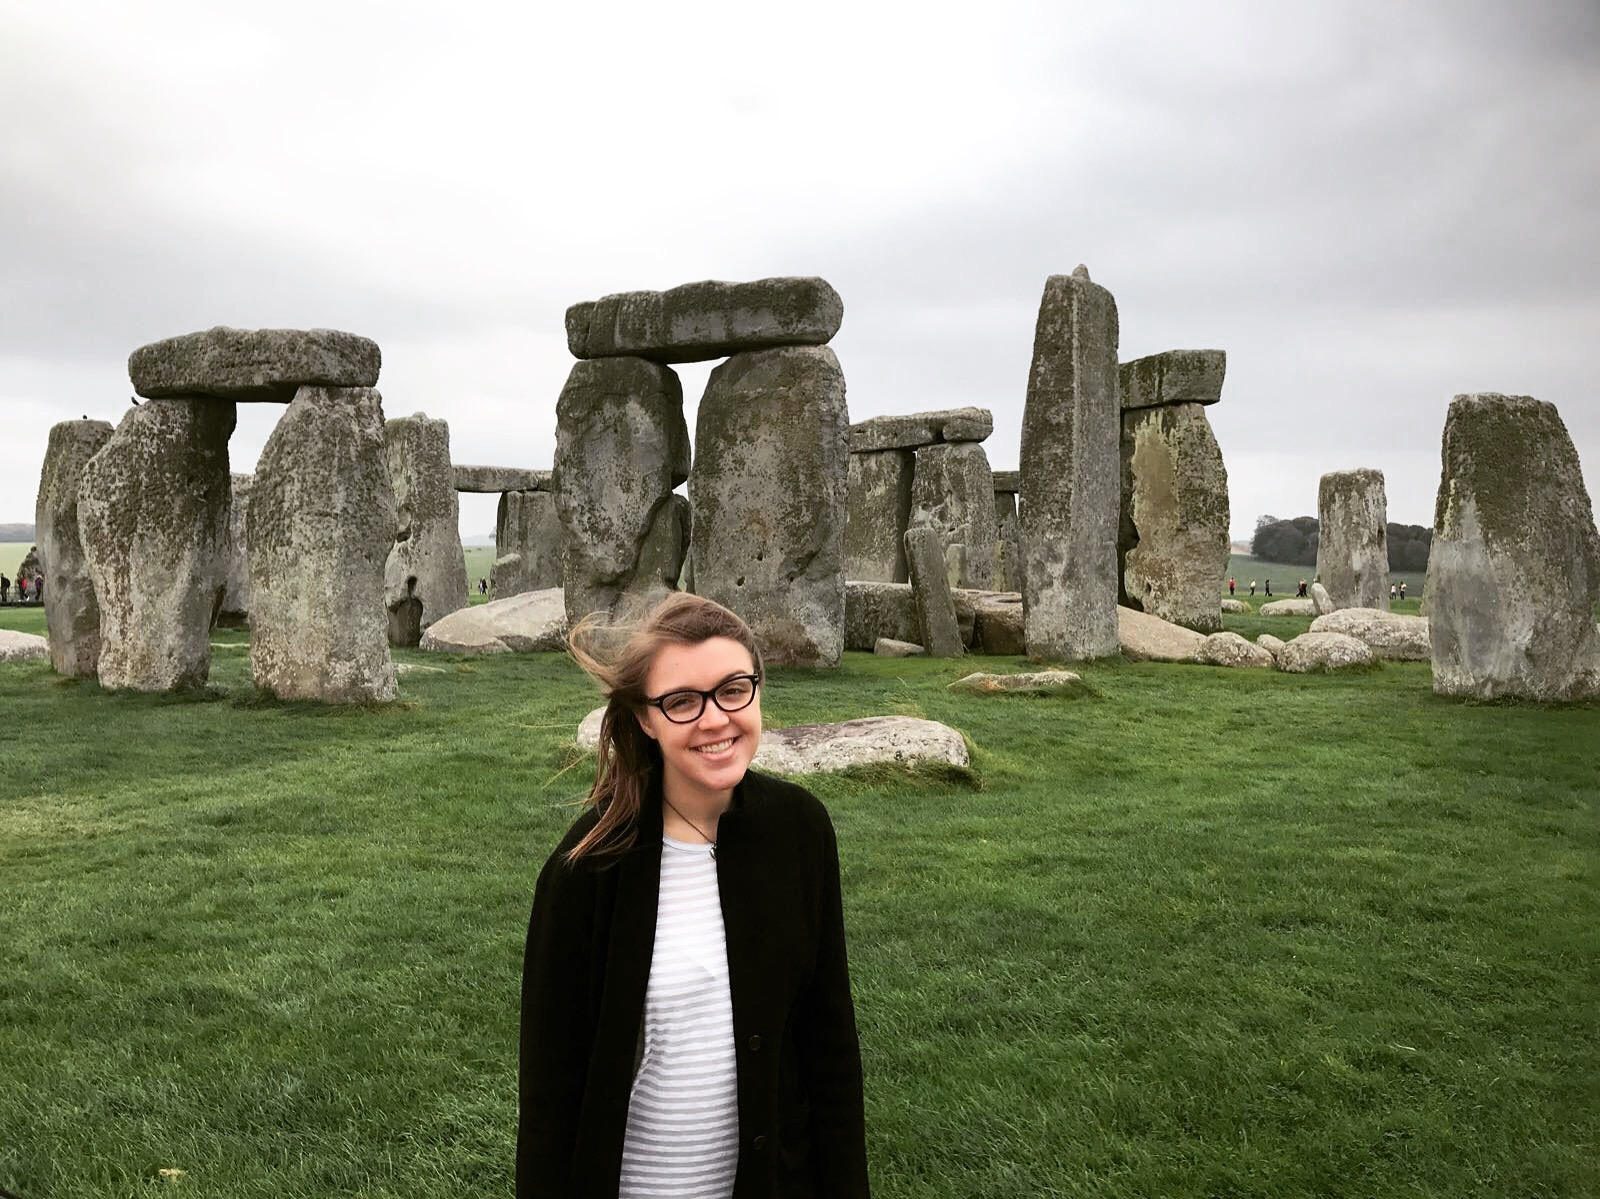 a person standing in front of Stonehenge